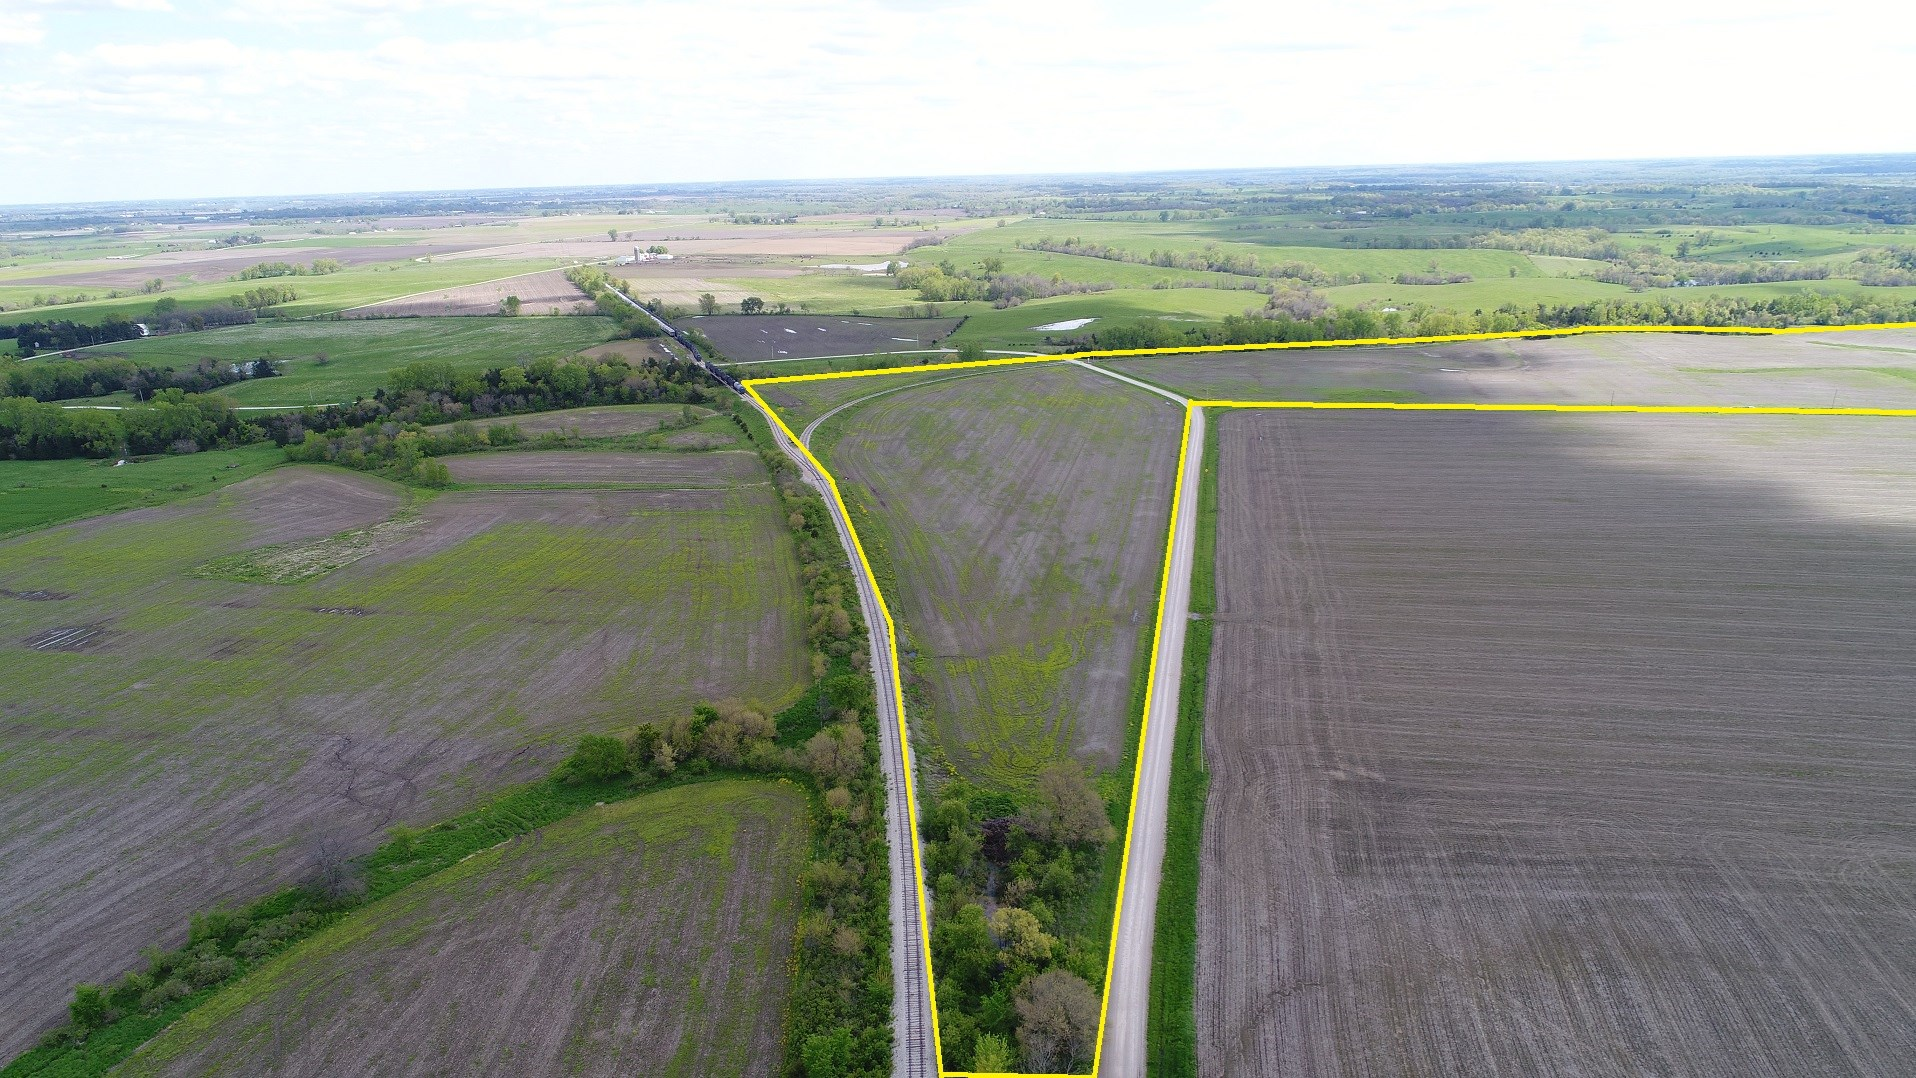 SOUTHERN IA ROW CROP FARM, TILLABLE FARMLAND FOR SALE IOWA